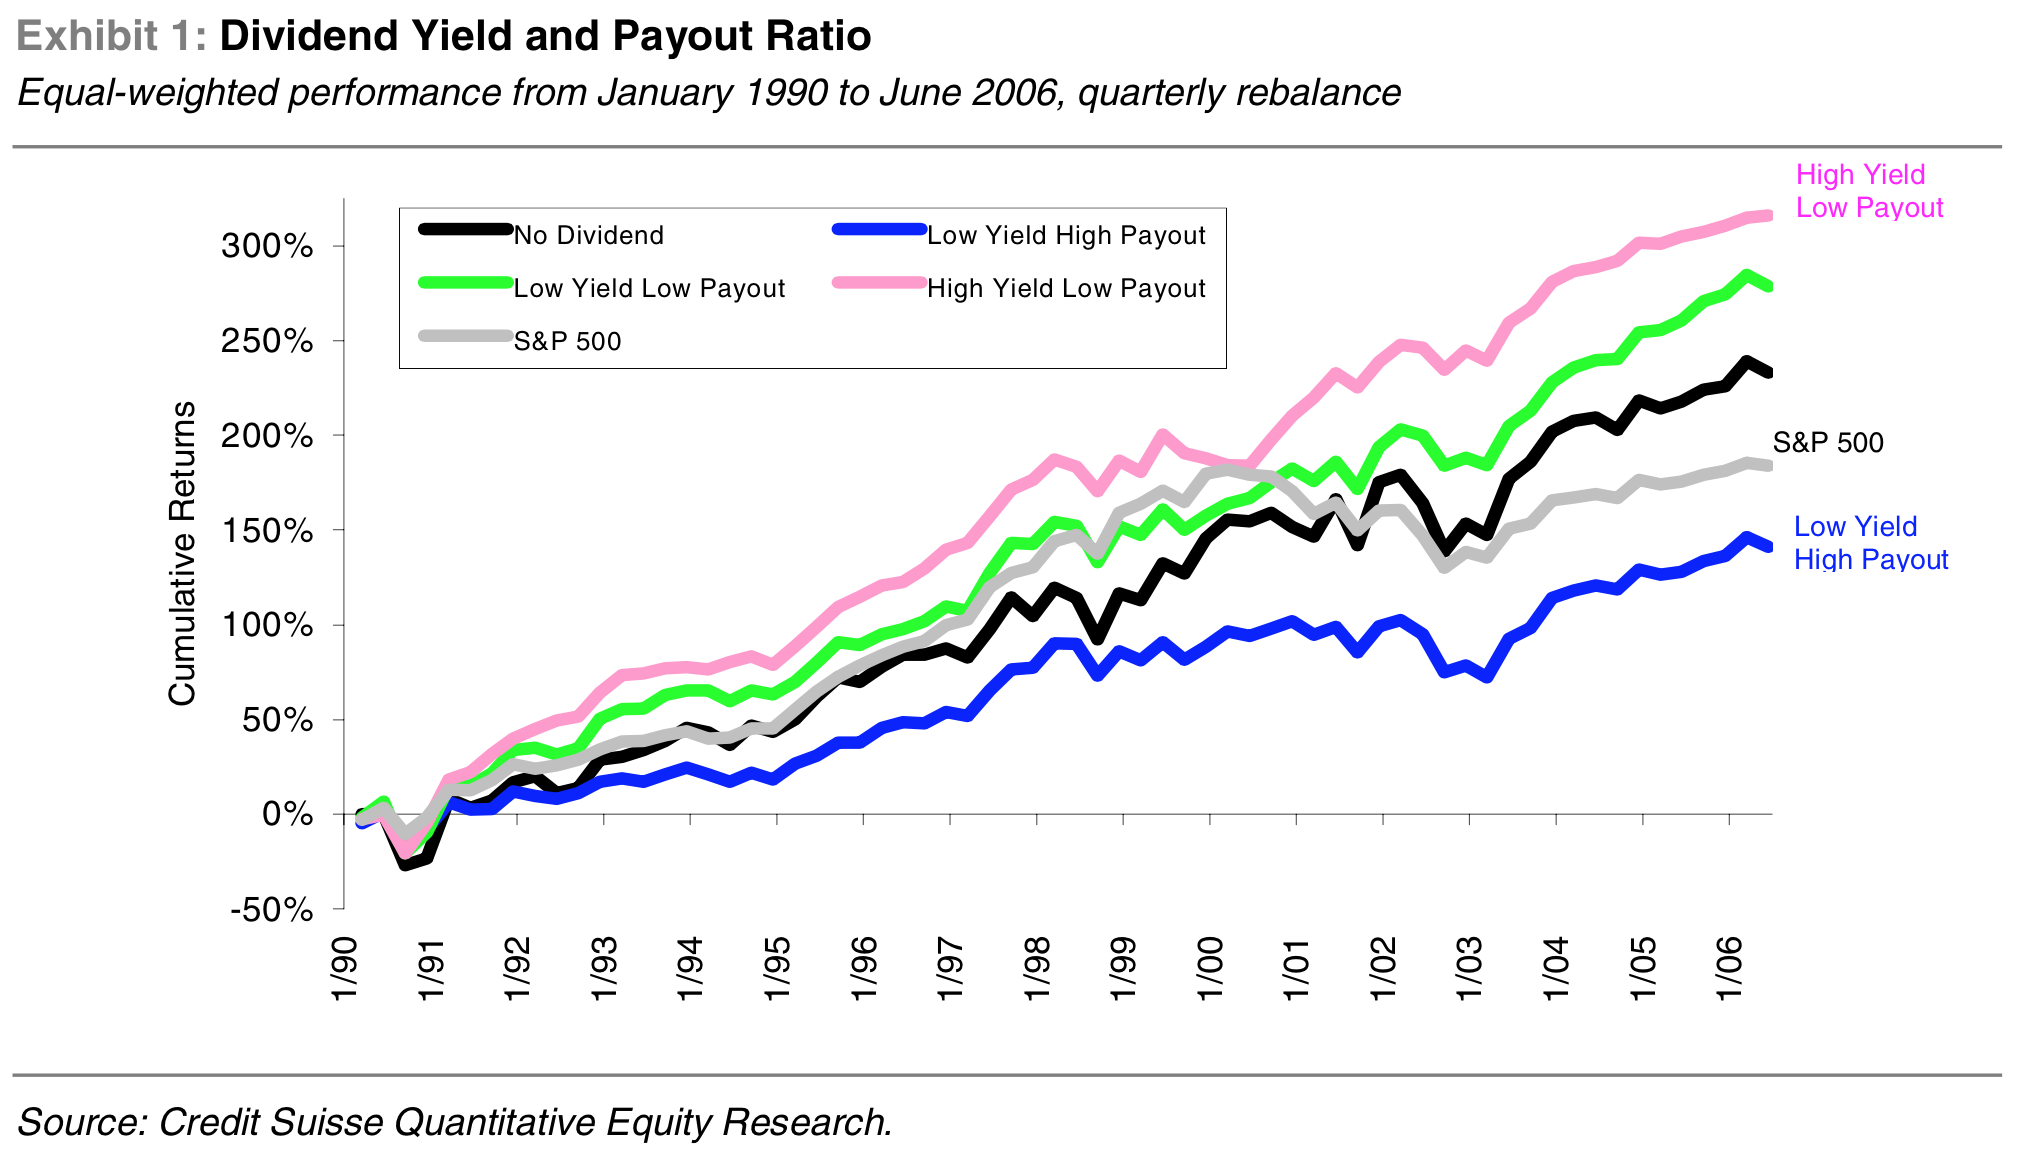 Stocks with a high dividend yield and low payout ratio perform best over time